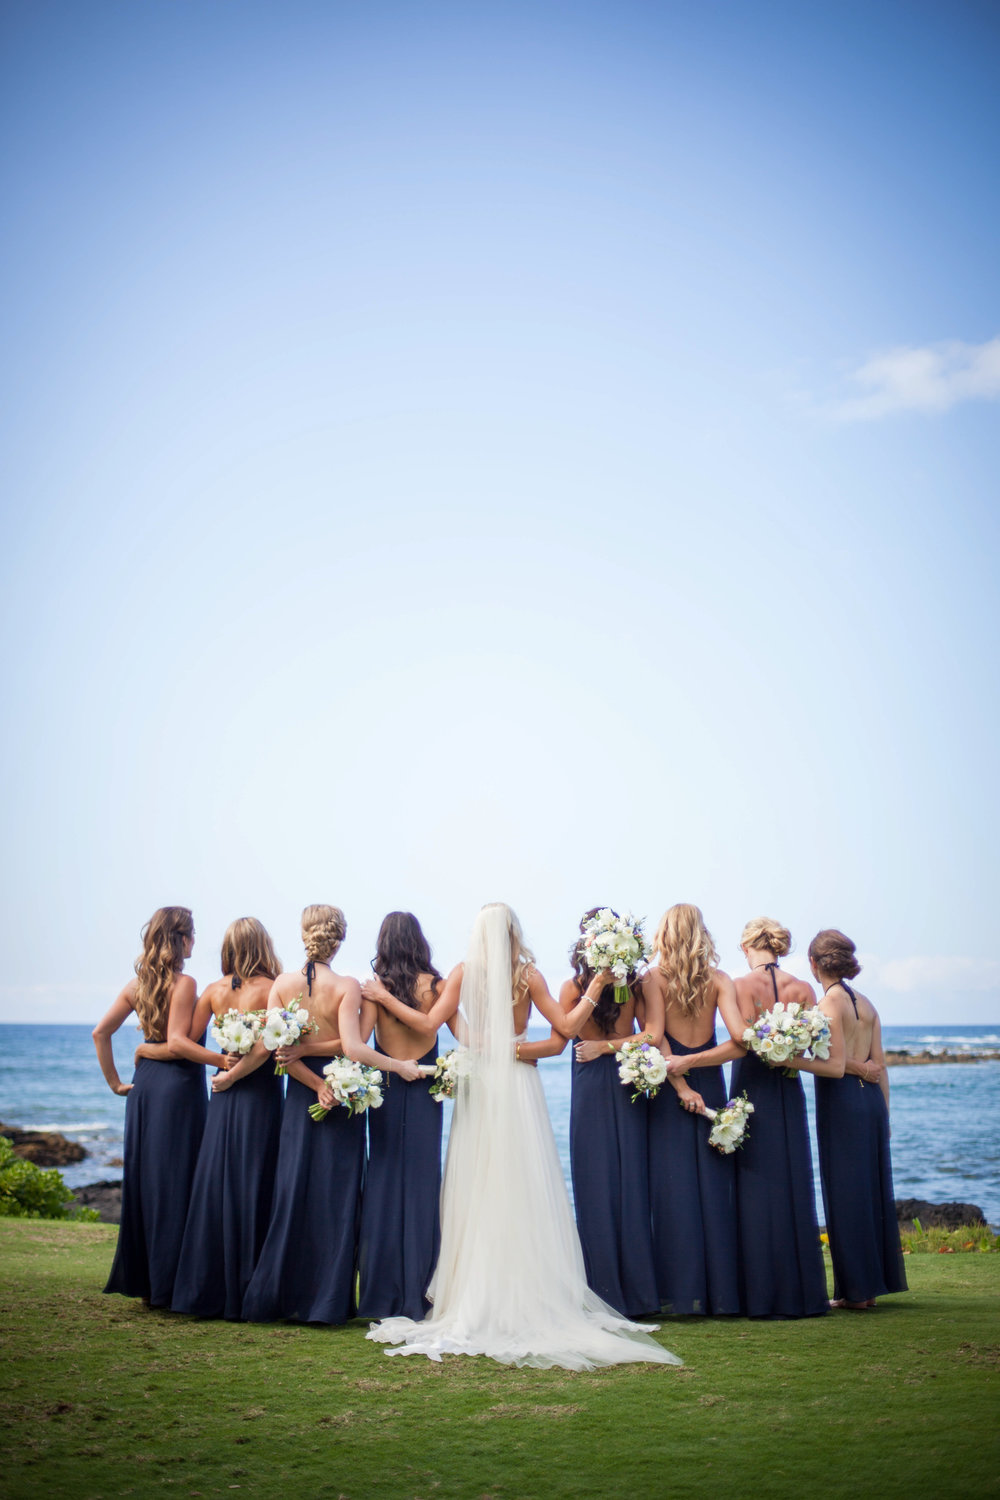 big island hawaii mauna lani resort wedding © kelilina photography 20160131152852-1.jpg